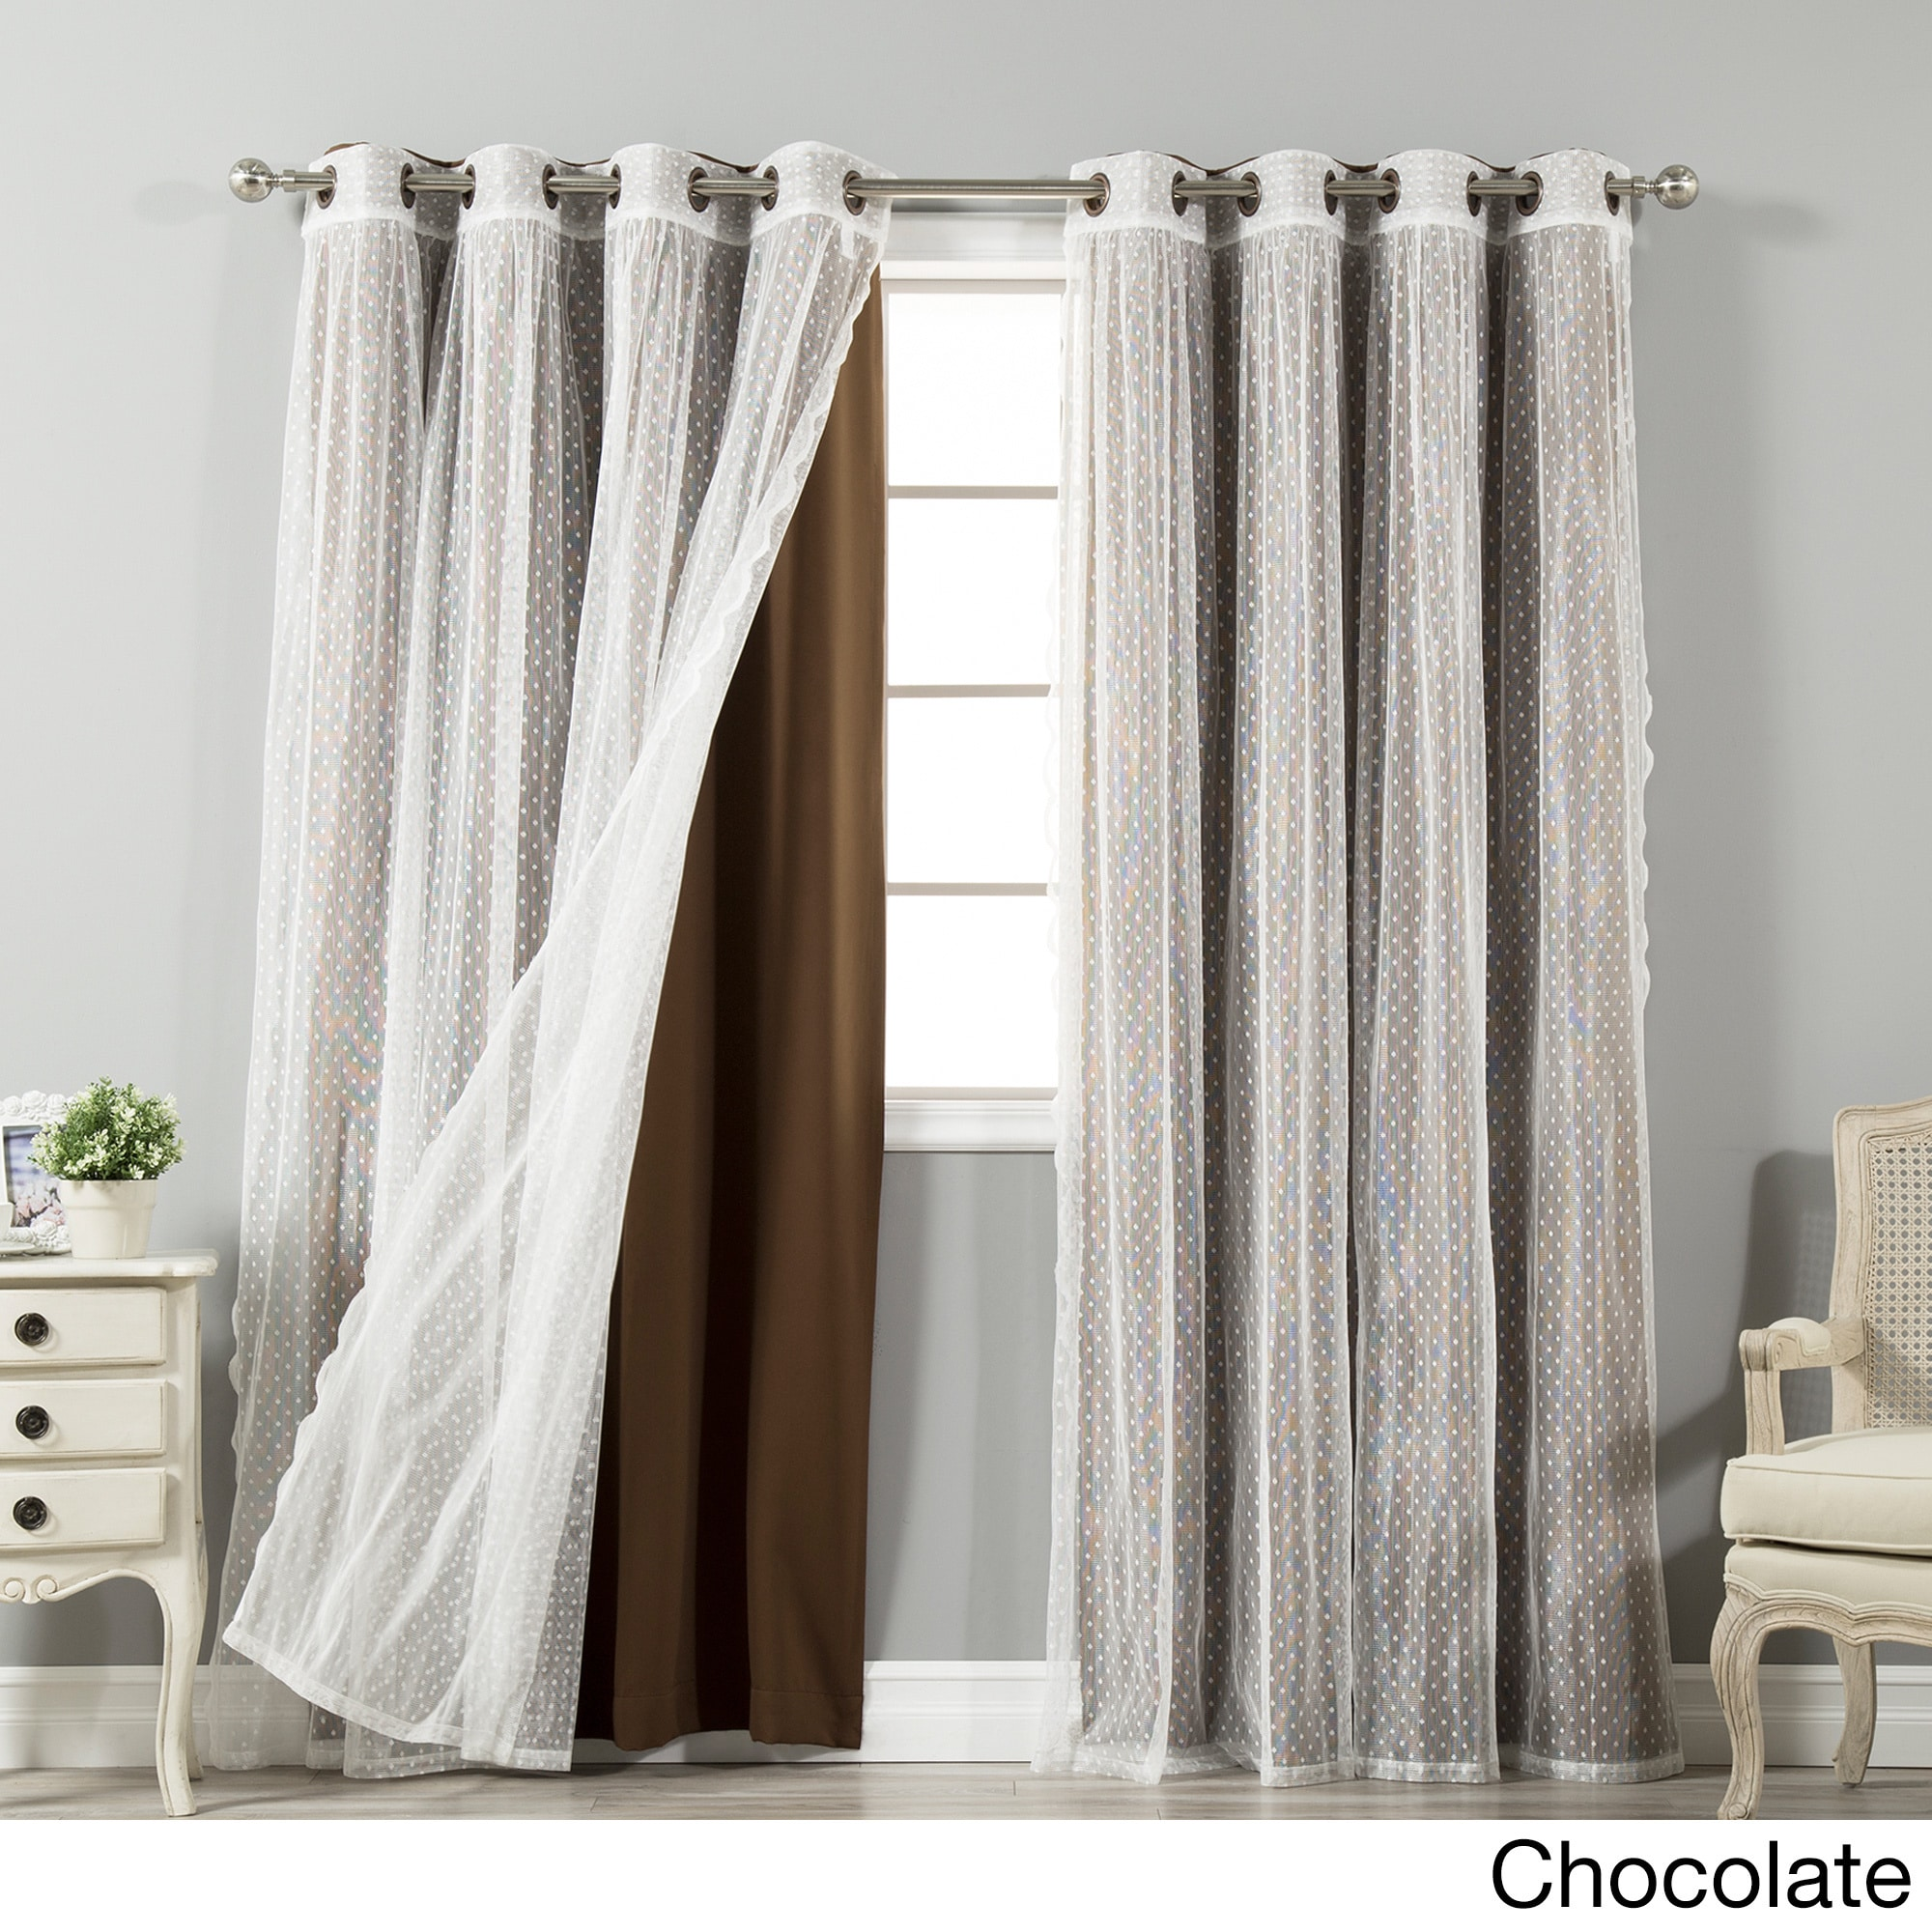 curtains plus home liner also wells eclipse pattern curtain curta decoration ideas poyester as grey linen blackout rmal impressive walmart ivory newest